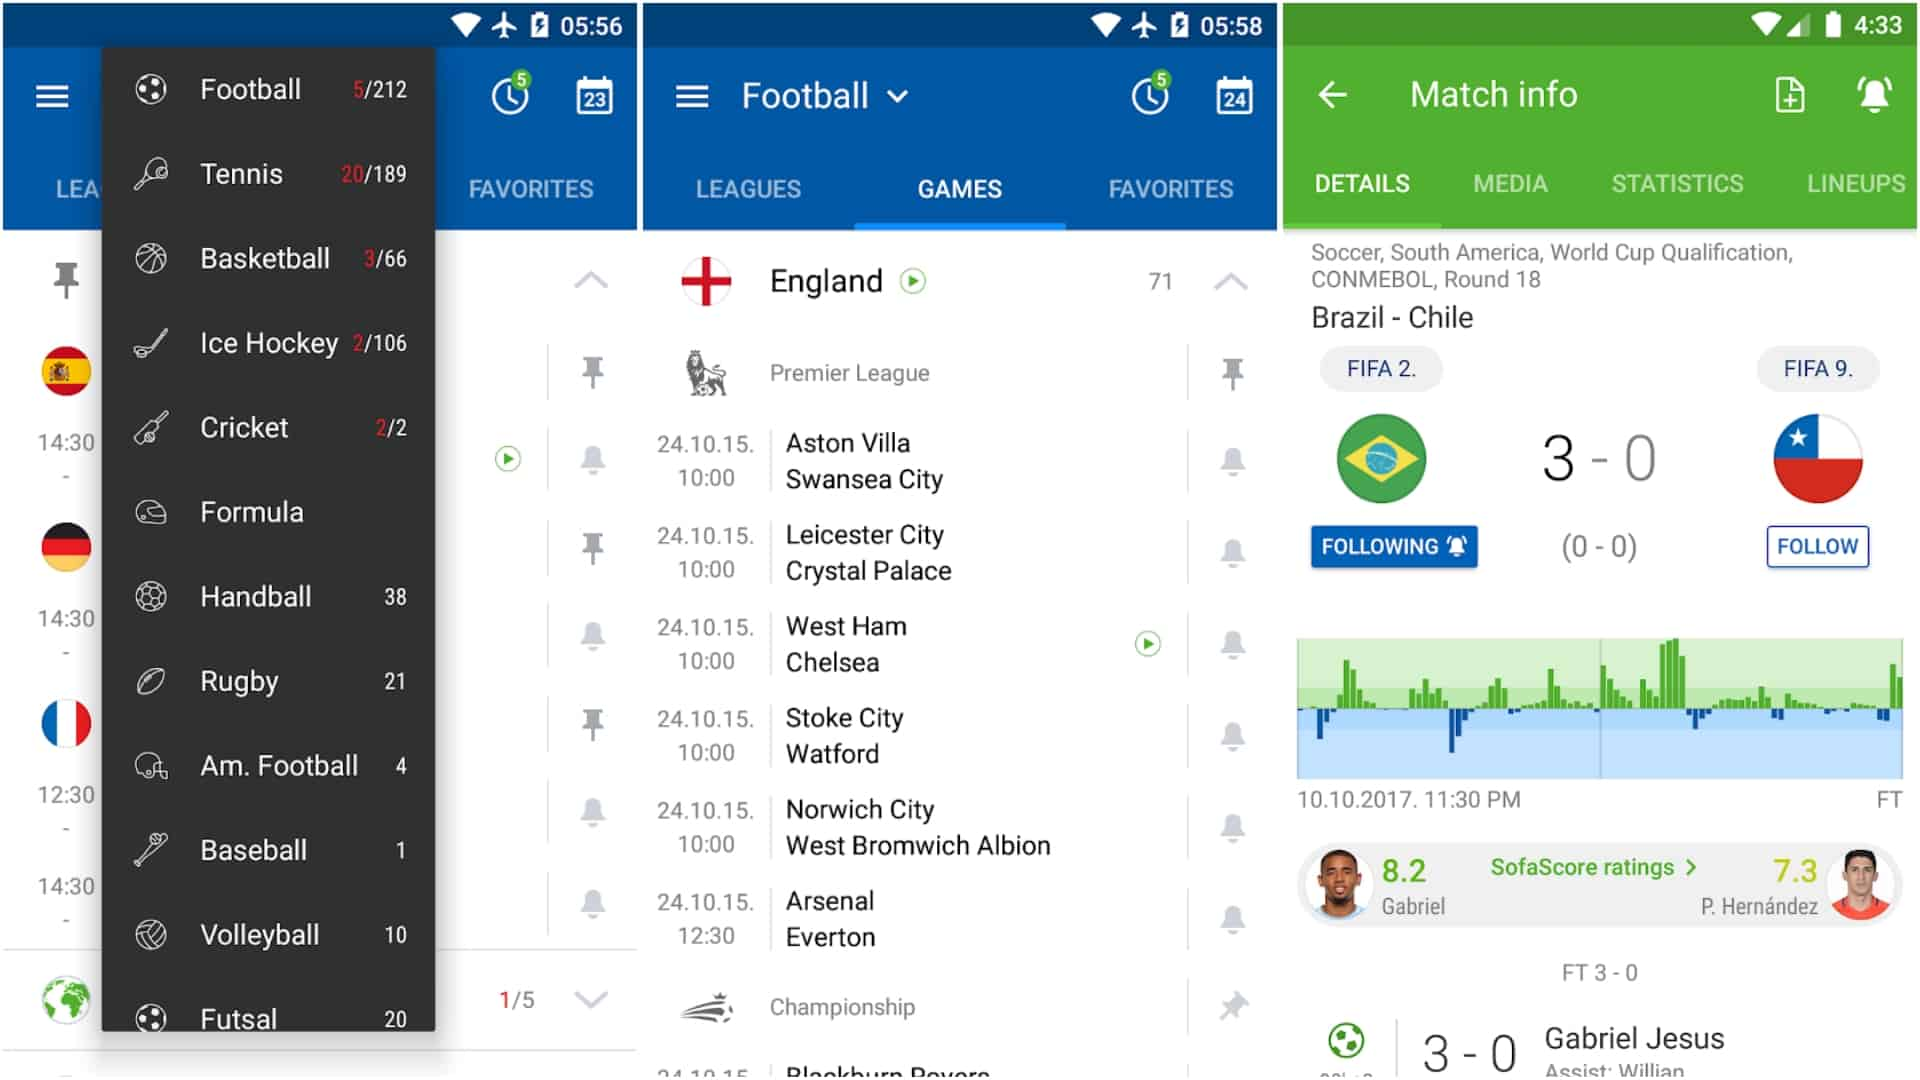 SofaScore app image March 2020